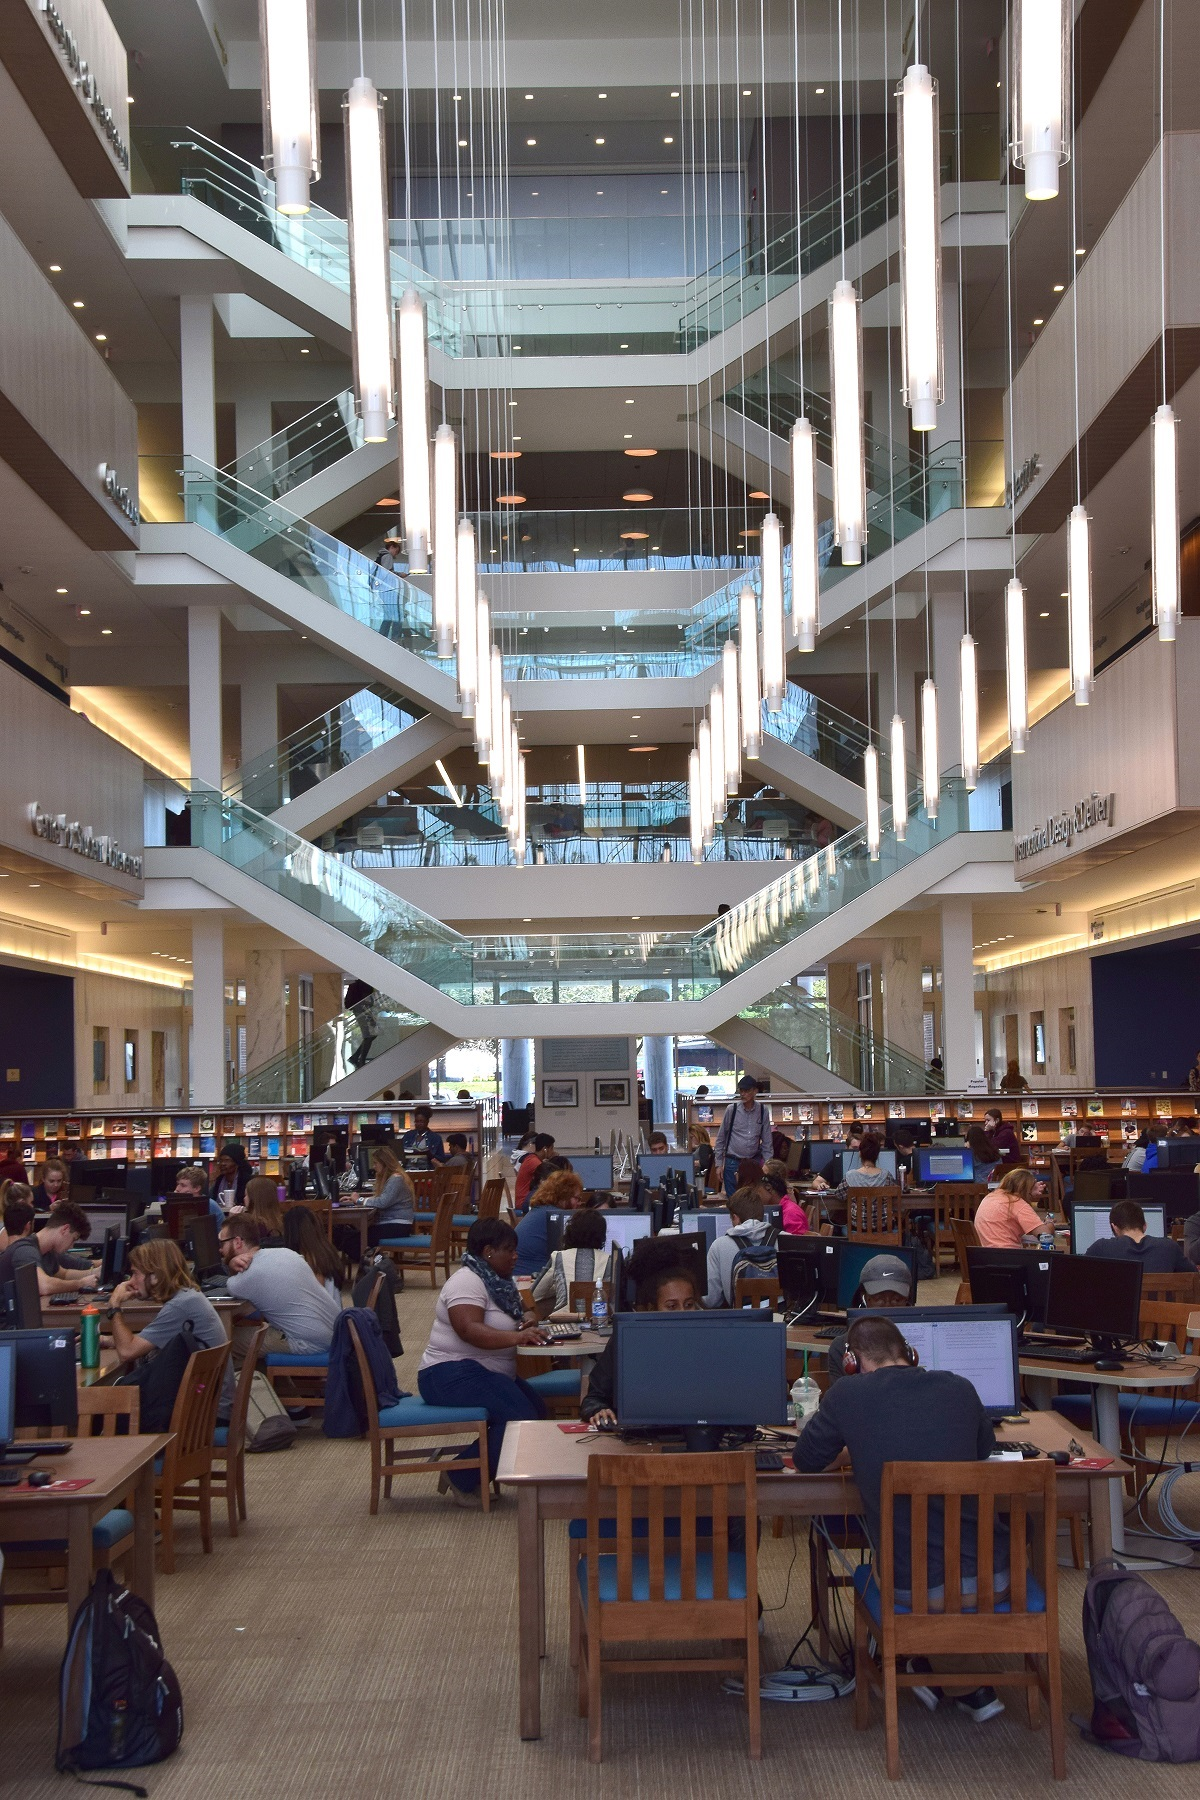 Photo of Academic Commons atrium showing students